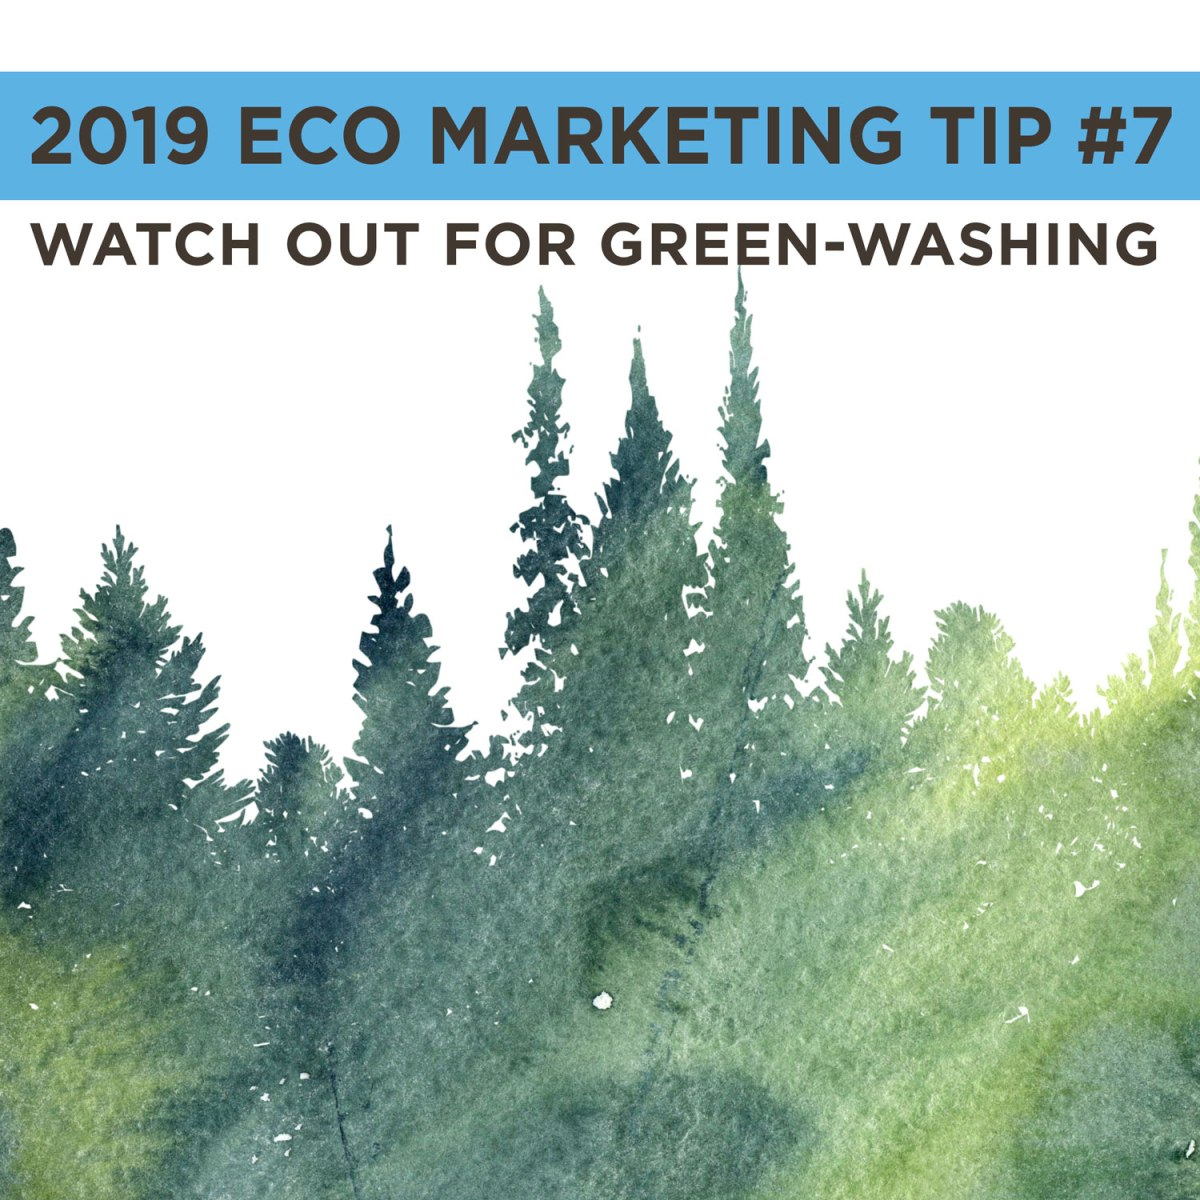 Eco Marketing Tip 7 is to watch out for green-washing